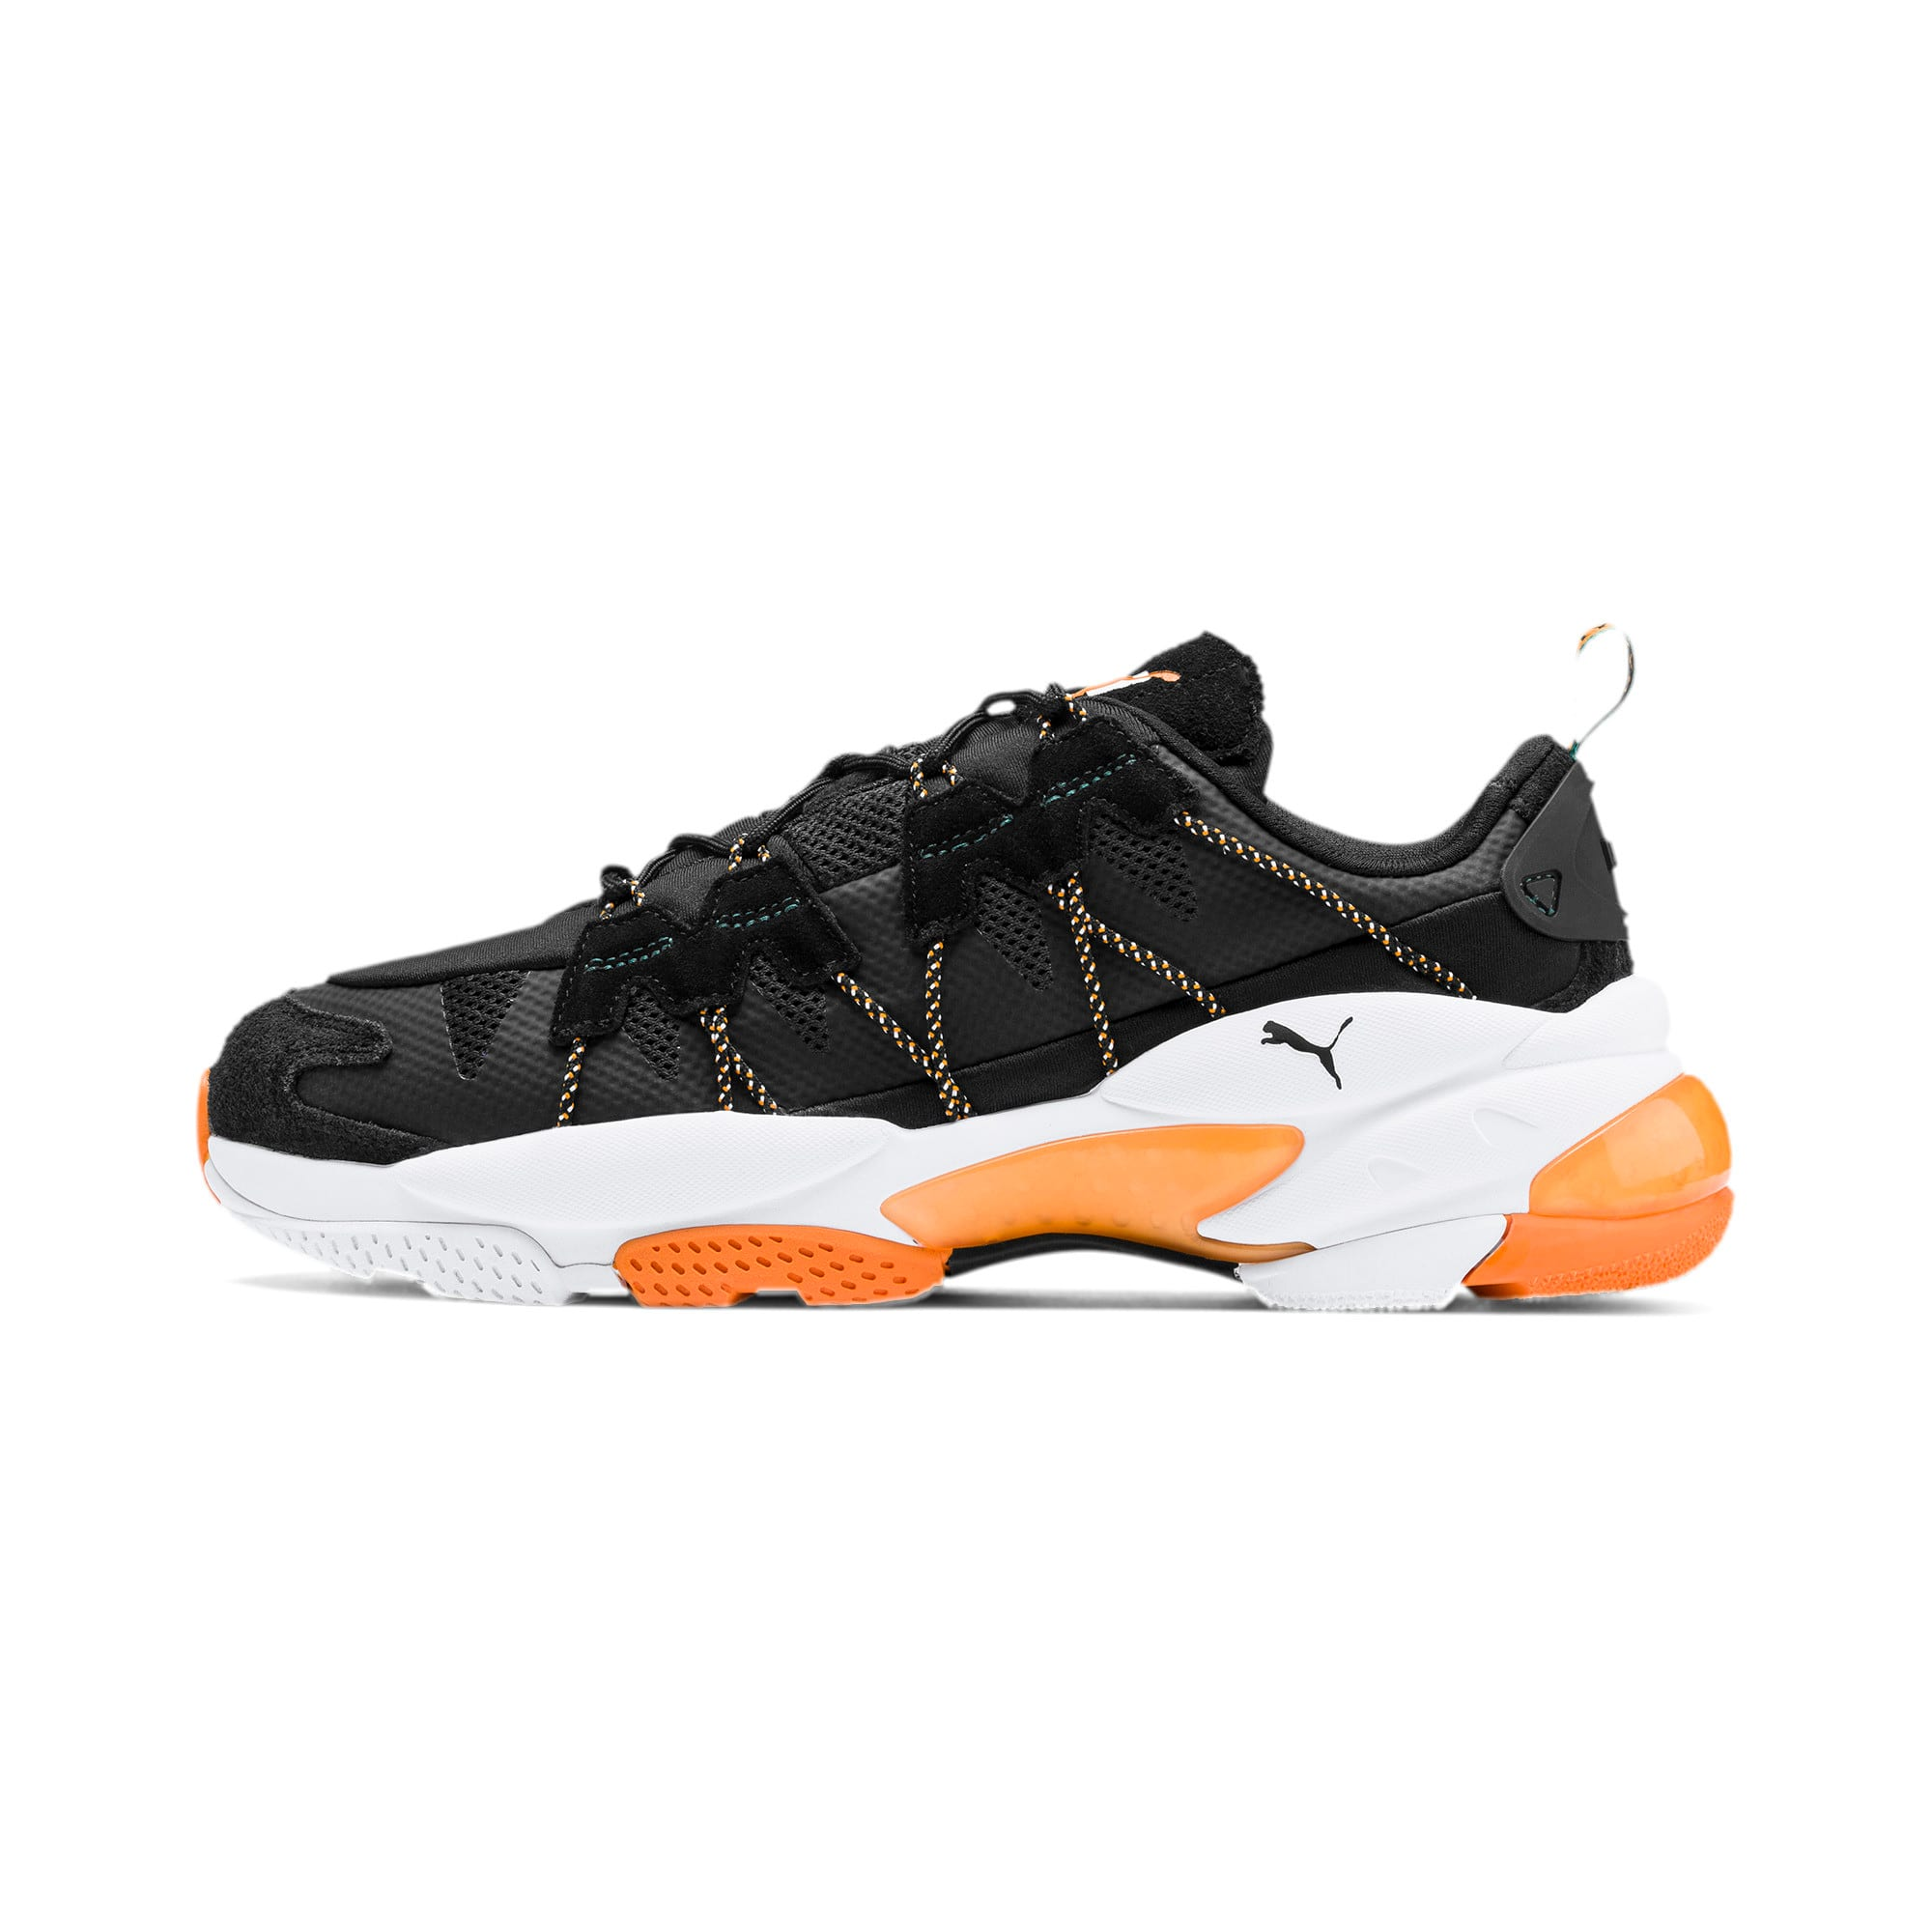 Thumbnail 1 of PUMA x HELLY HANSEN Omega Trainers, Puma Black, medium